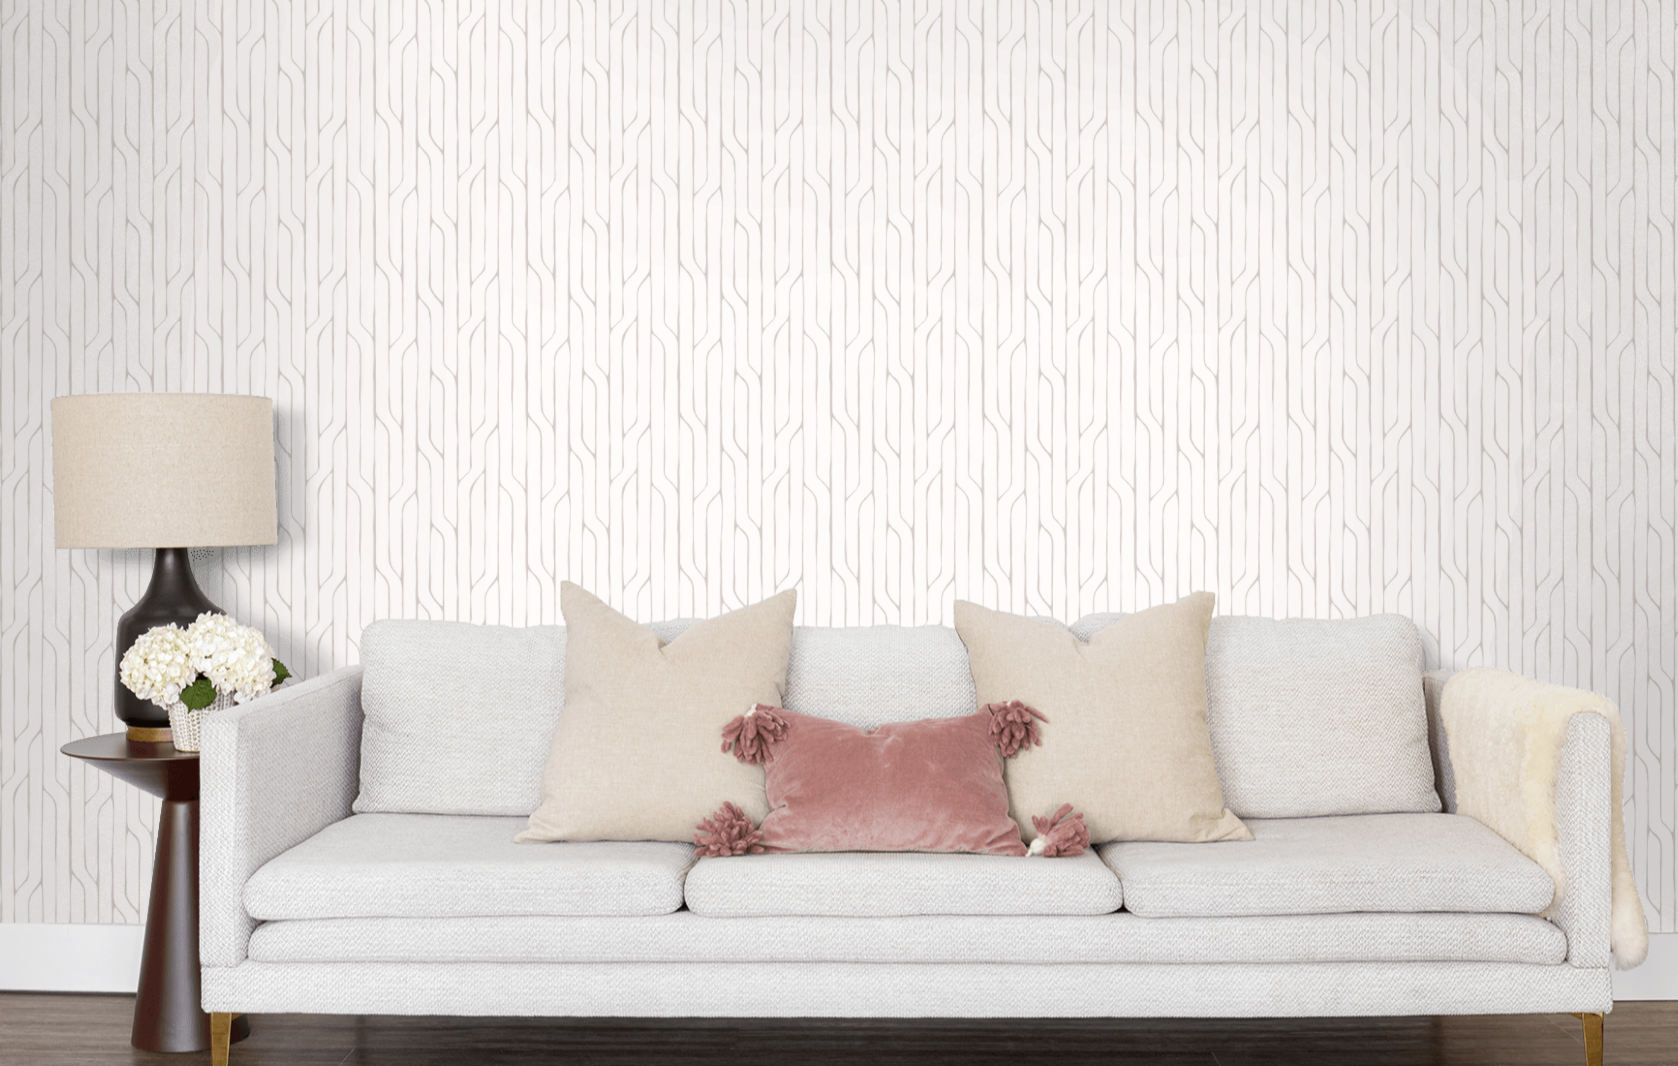 A sofa in front of a wall with the white and grey geometric wallpaper on it